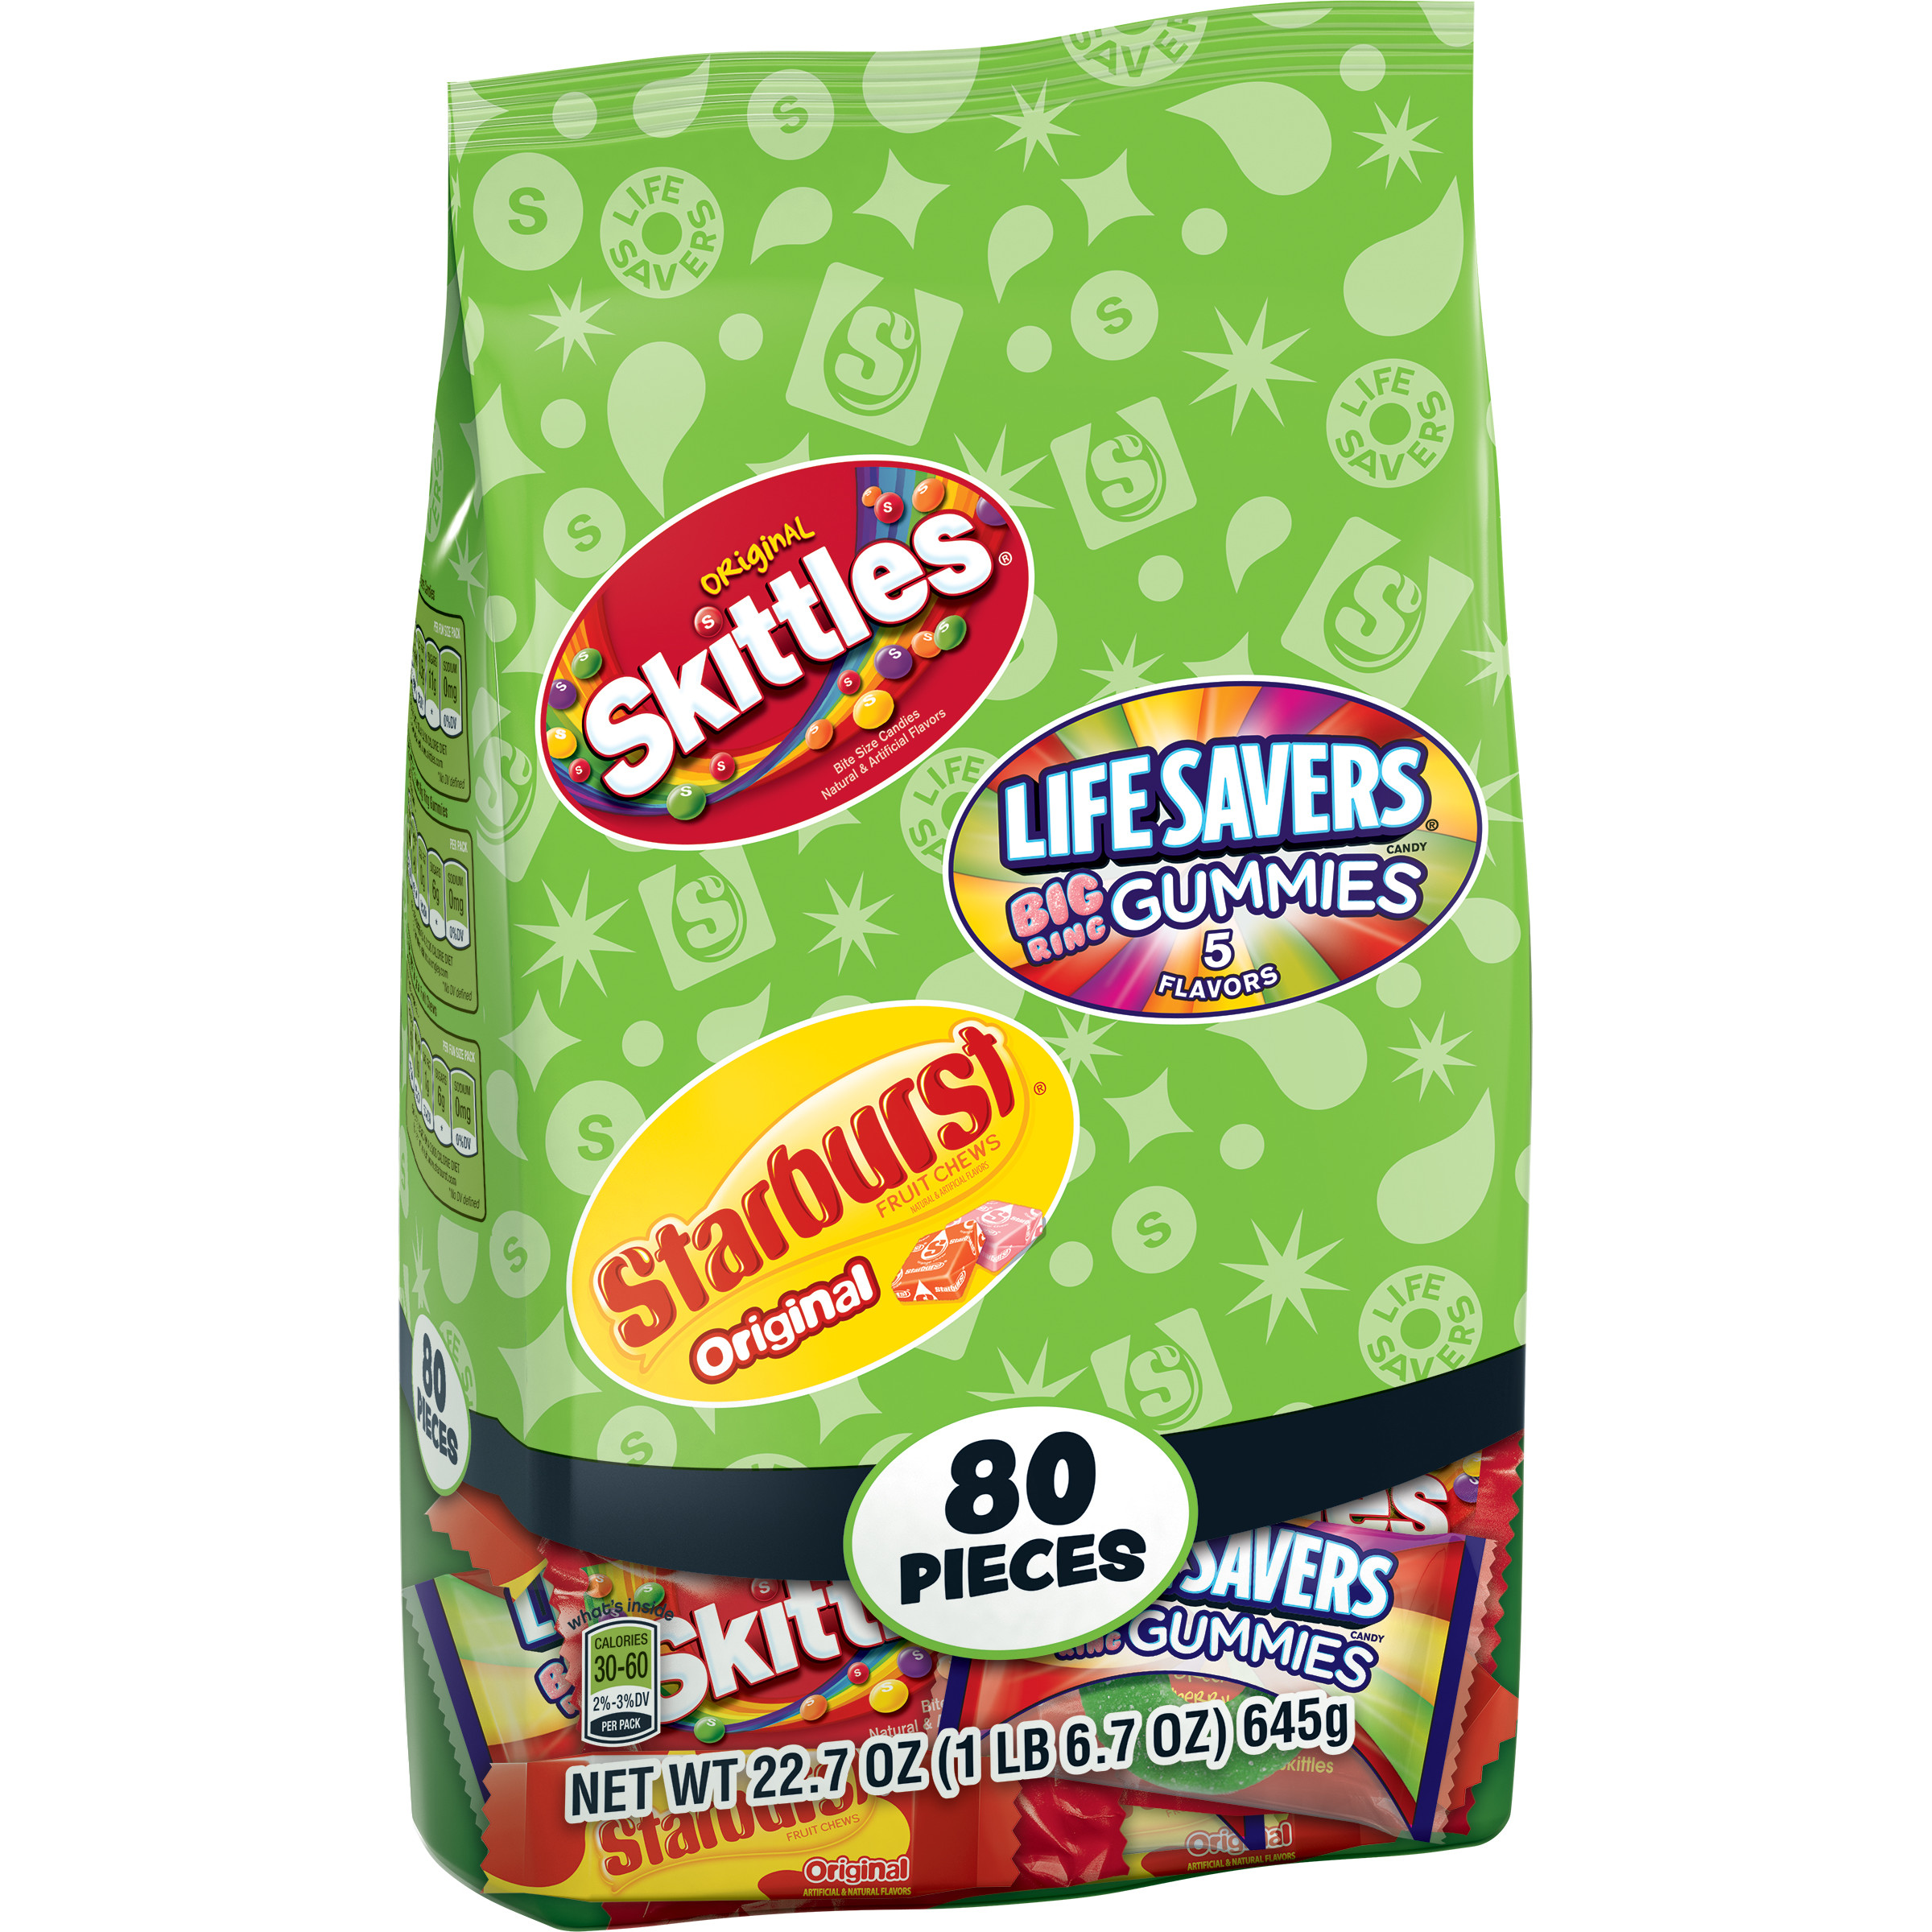 Skittles, Starburst and Life Savers Fun Size Variety Bag, 22.7 ounce (80 pieces)